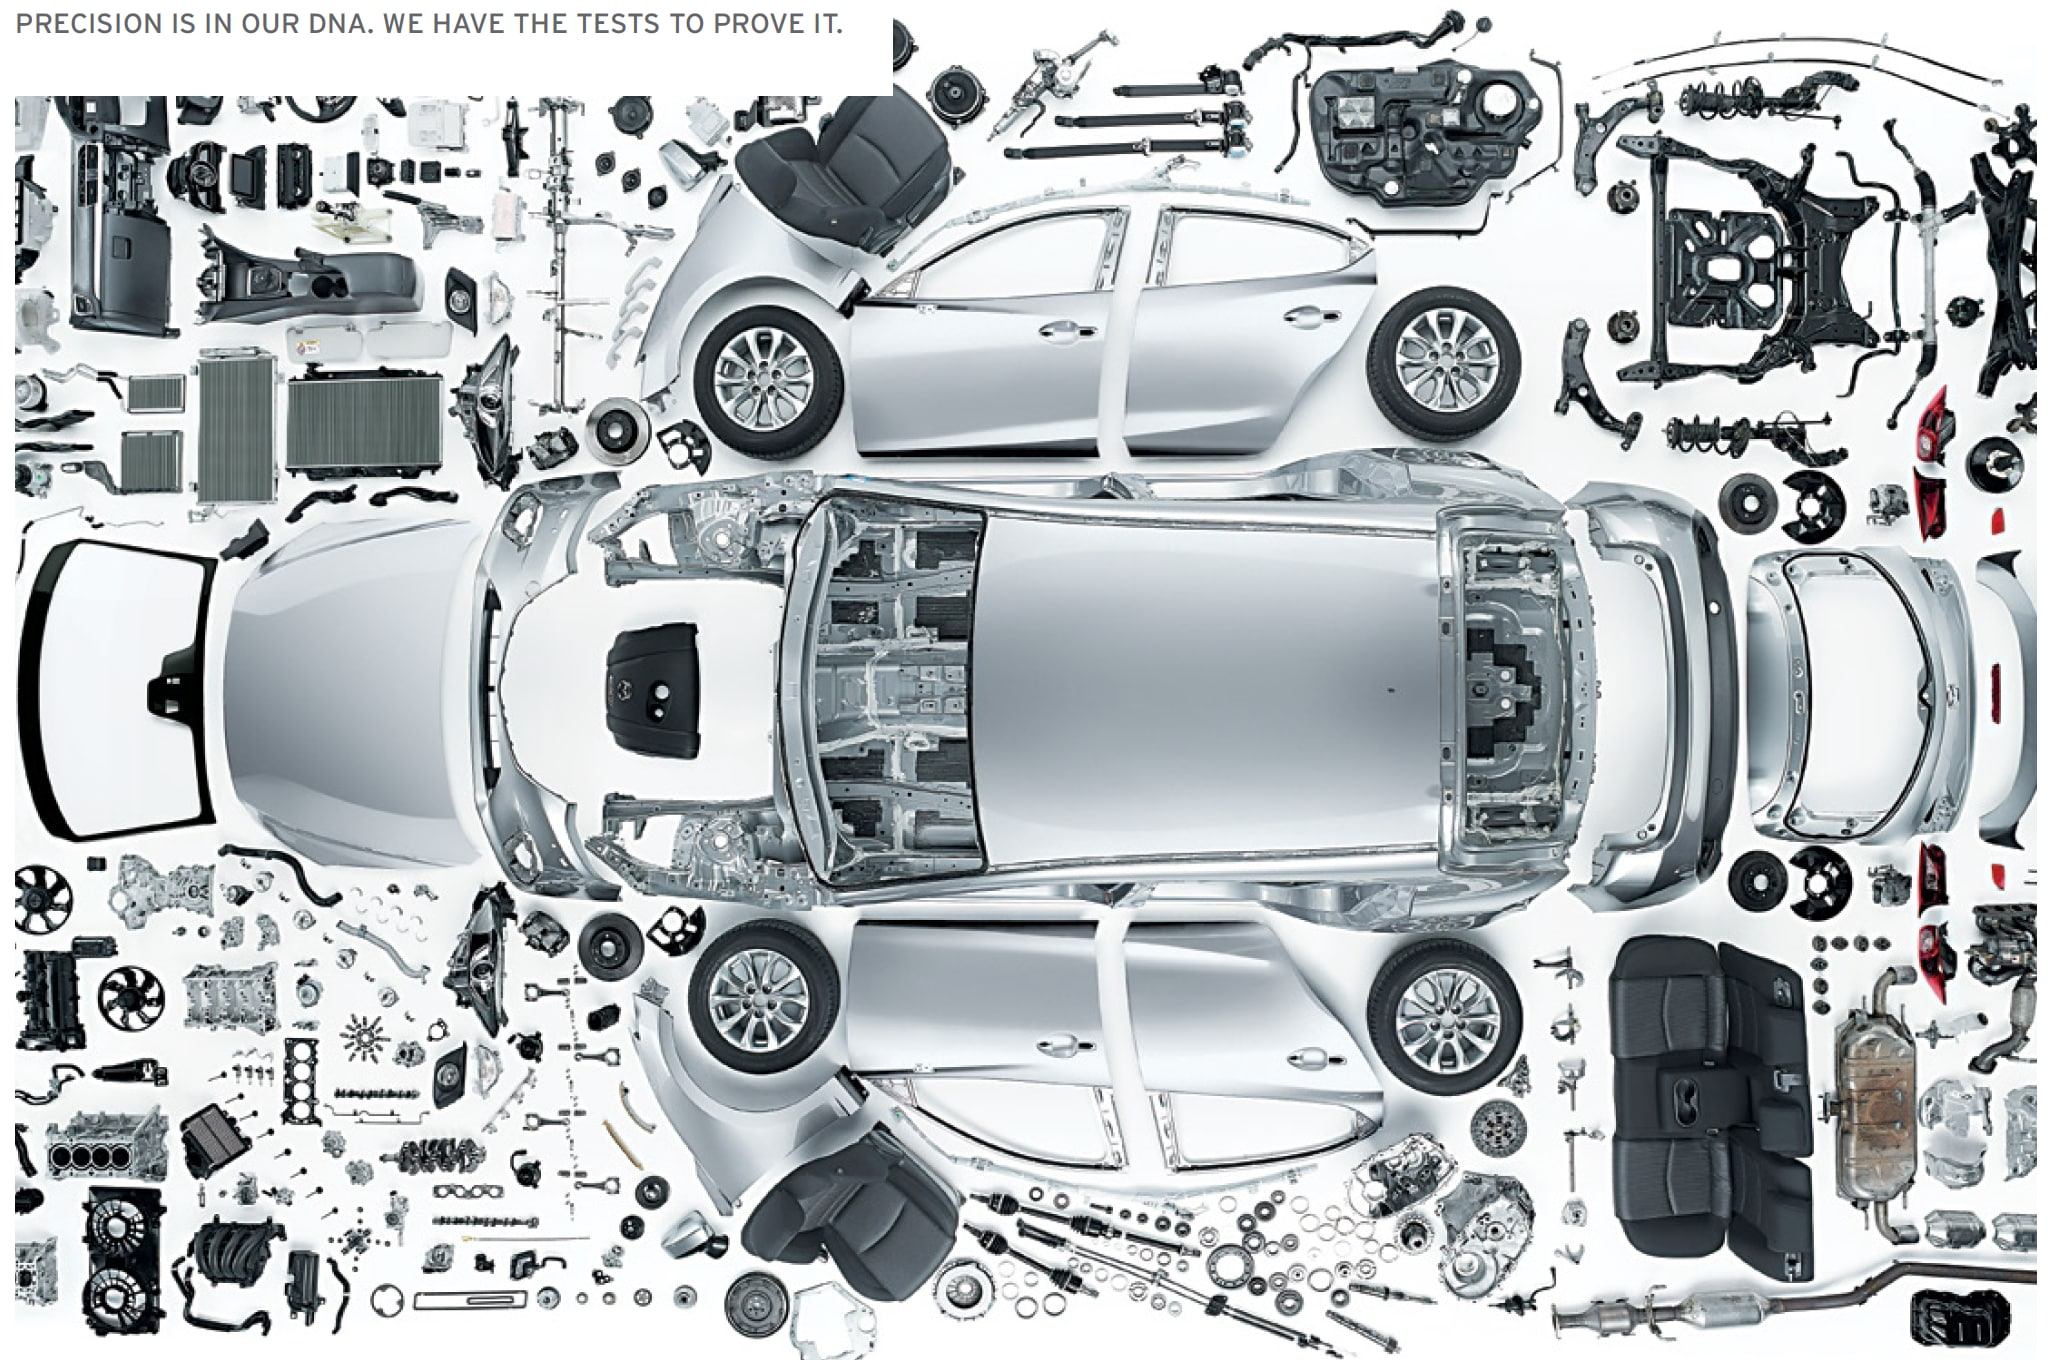 Mazda Certified Pre-Owned Overview Schematic